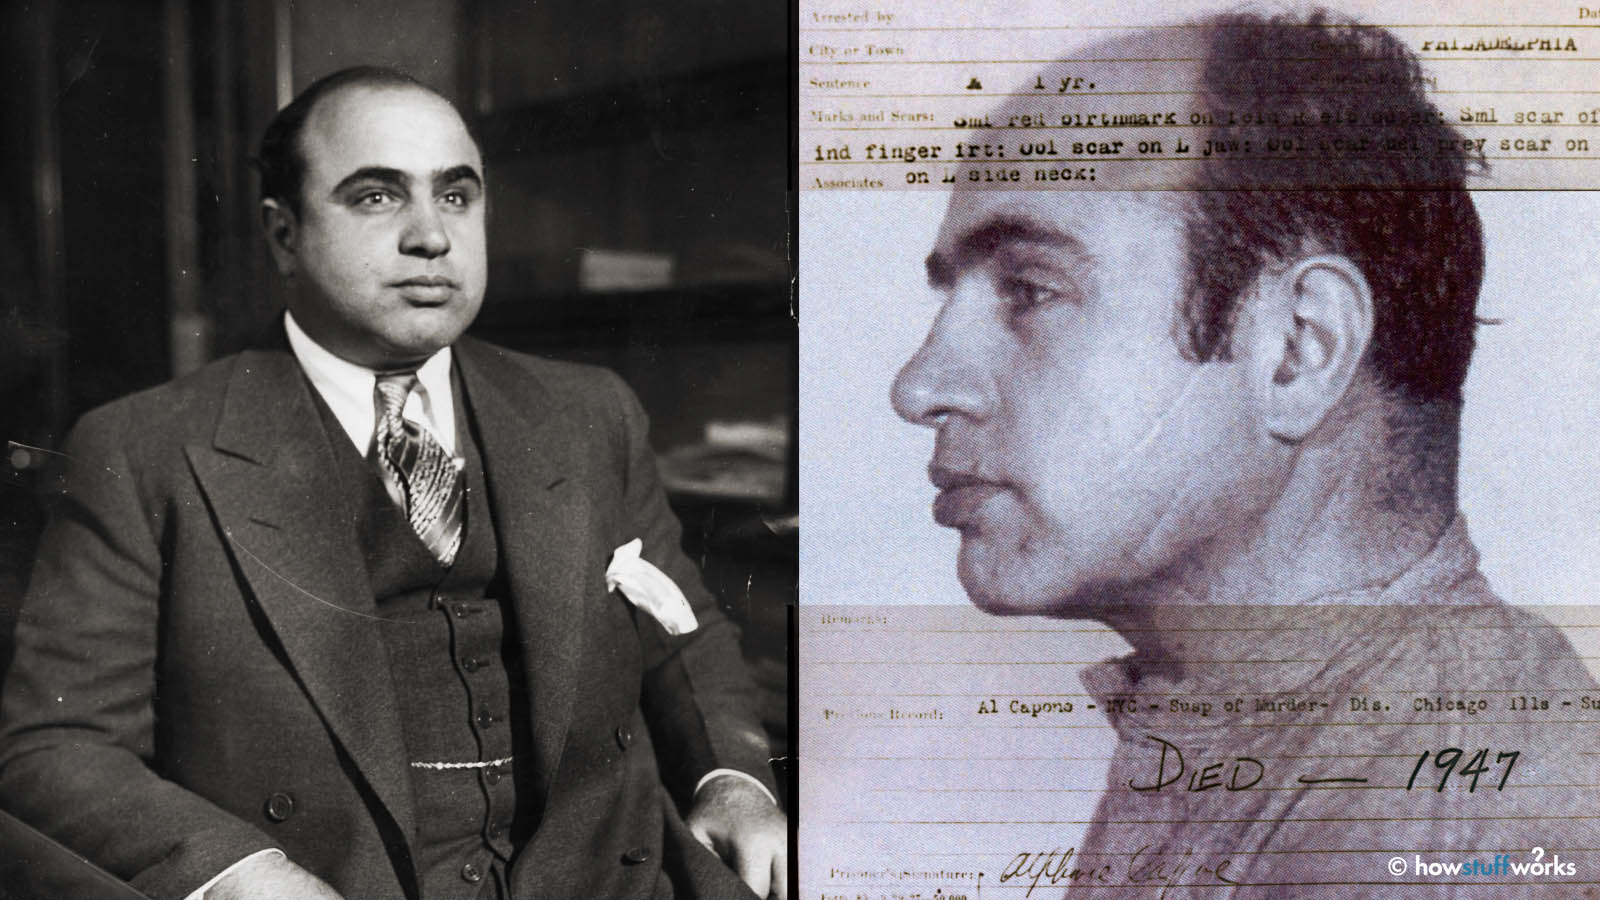 How 'Scarface' Al Capone Became the Original Gangster